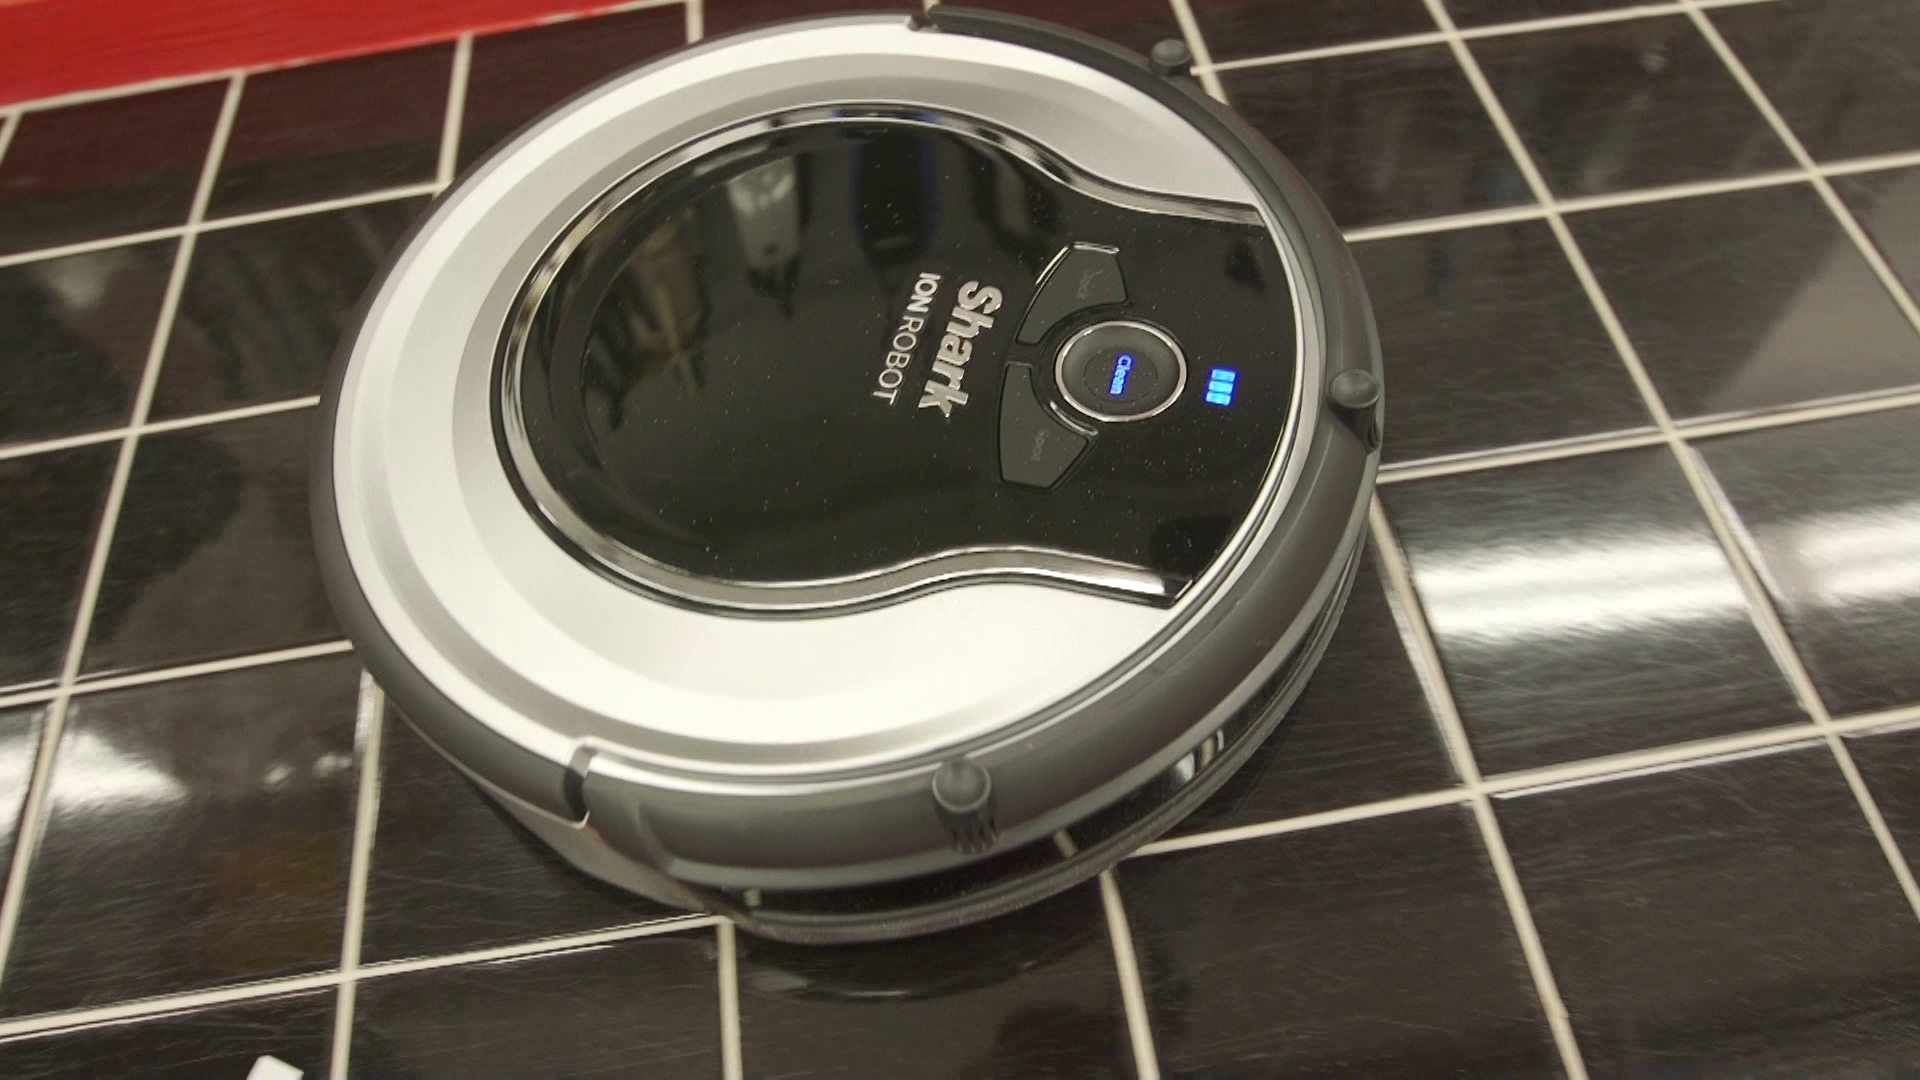 Consumer Reports Best Rated Robotic Vacuums Under 300